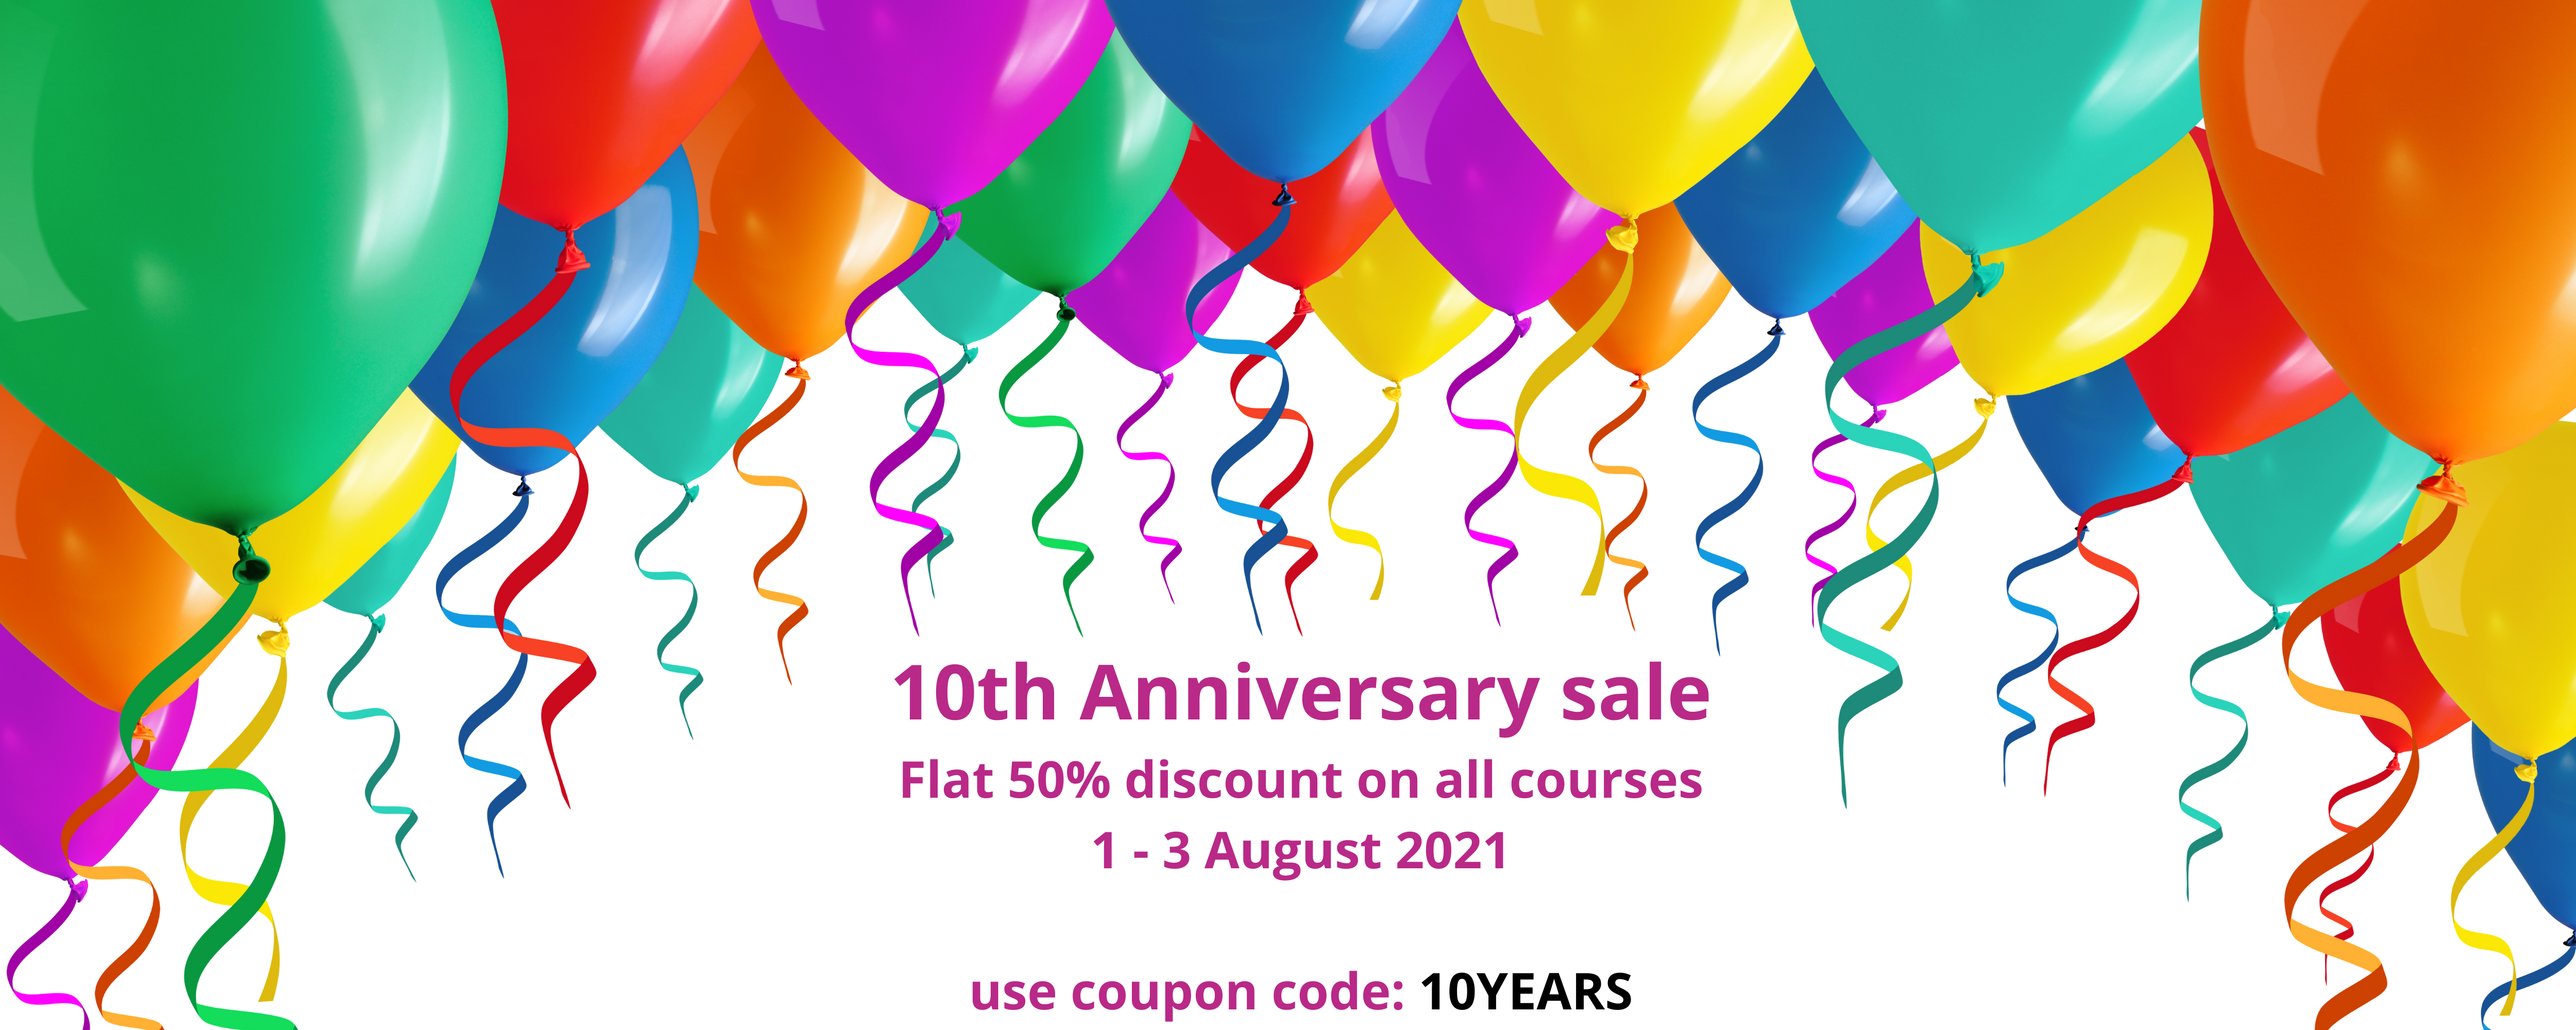 10th Anniversary sale 50% use coupon 10YEARS